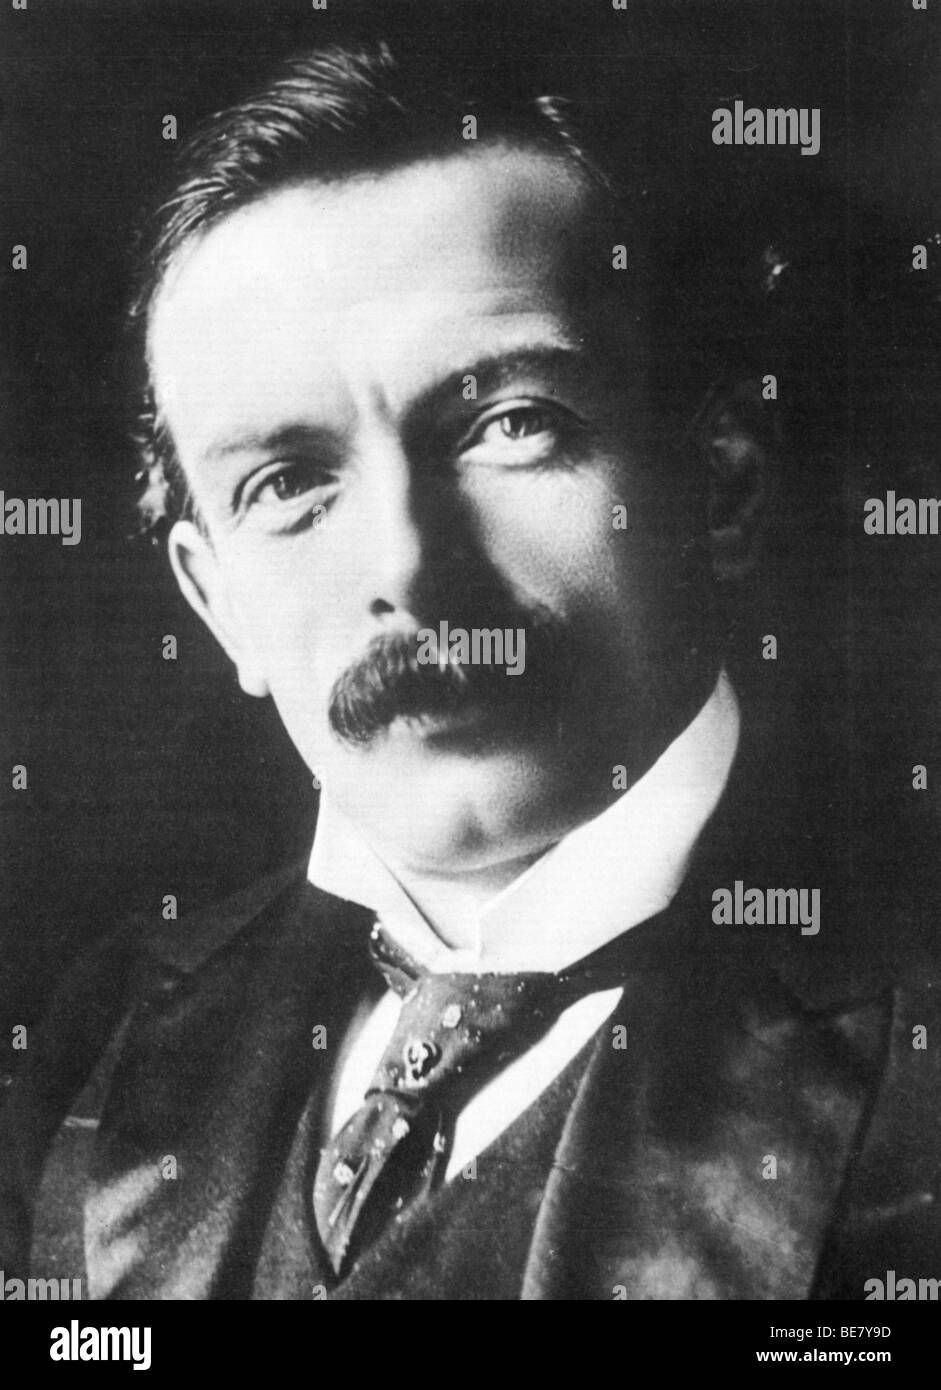 DAVID LLOYD GEORGE  - Welsh Liberal statesman (1863-1945) - Stock Image